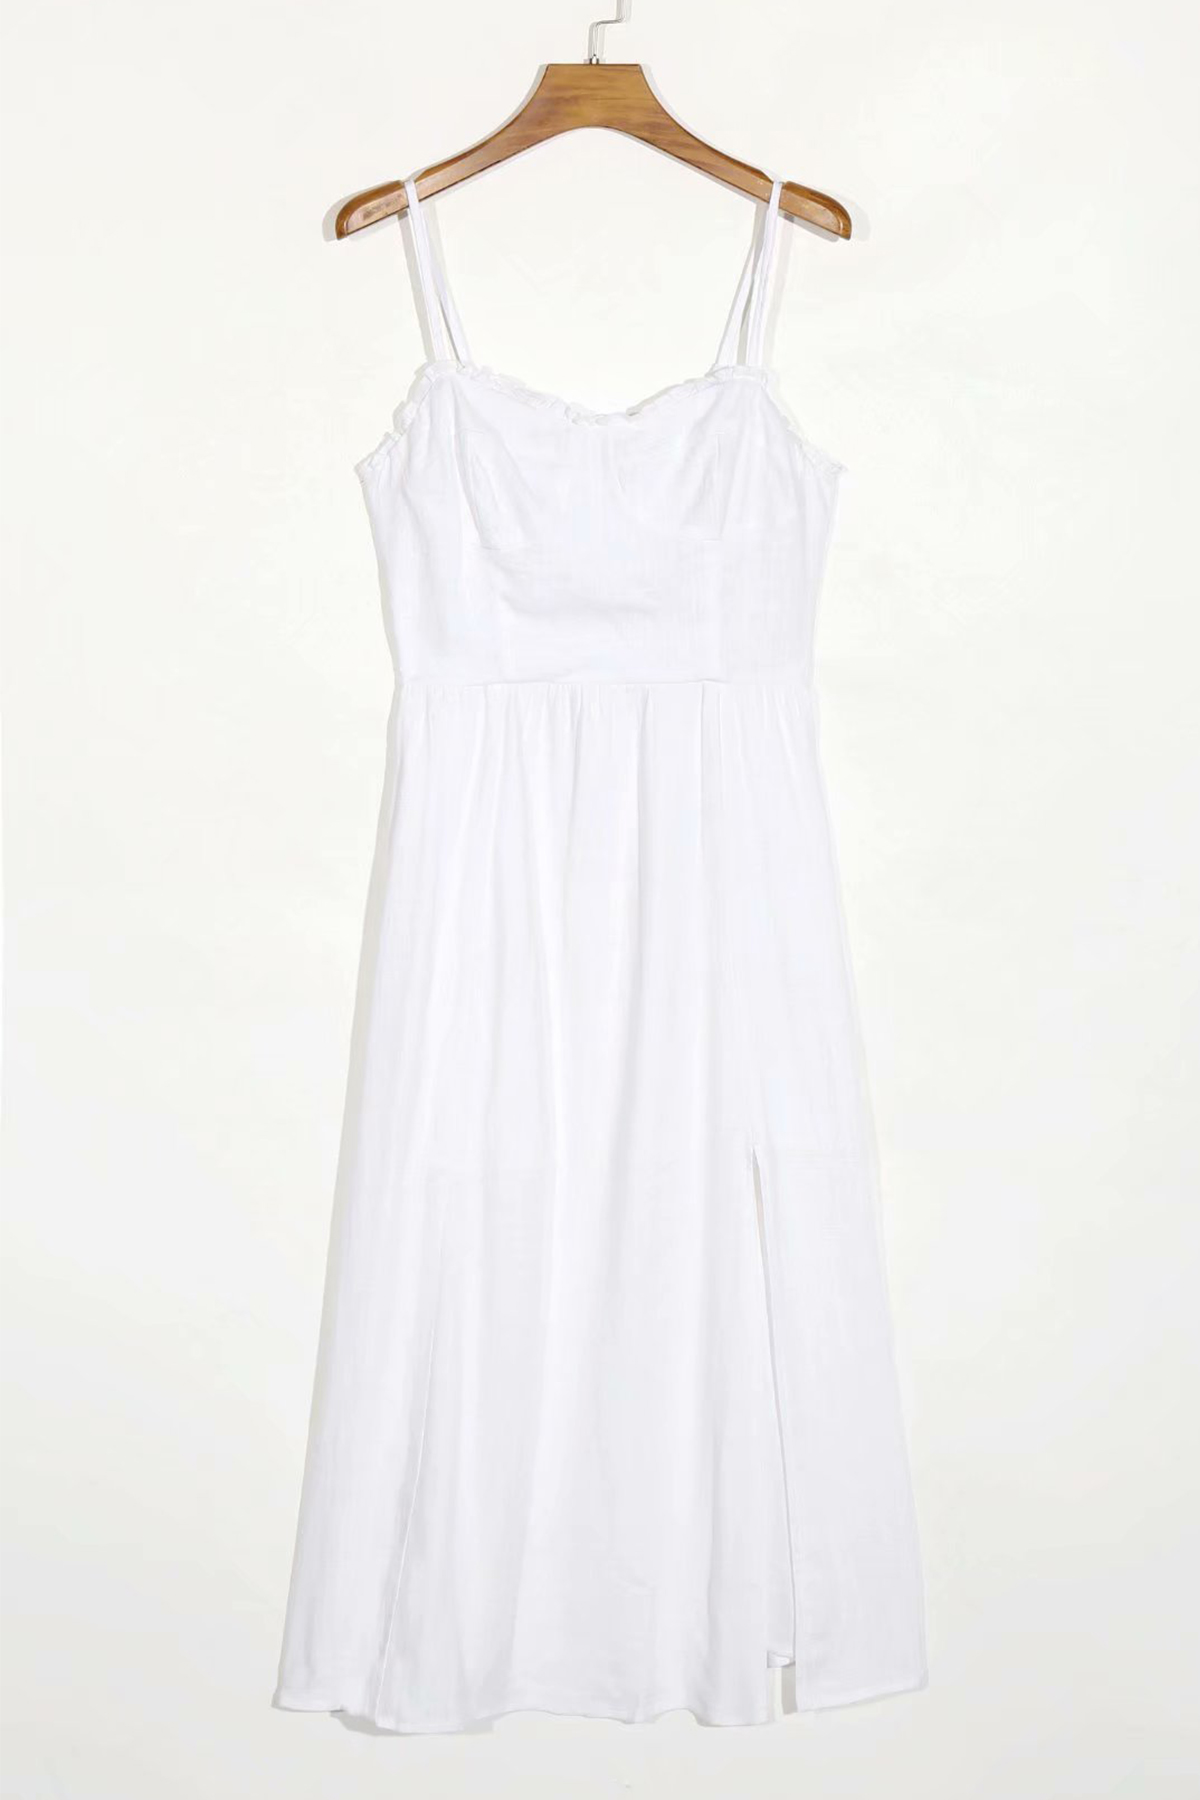 THE MOODSS Zelda Linen Midi Dress-1